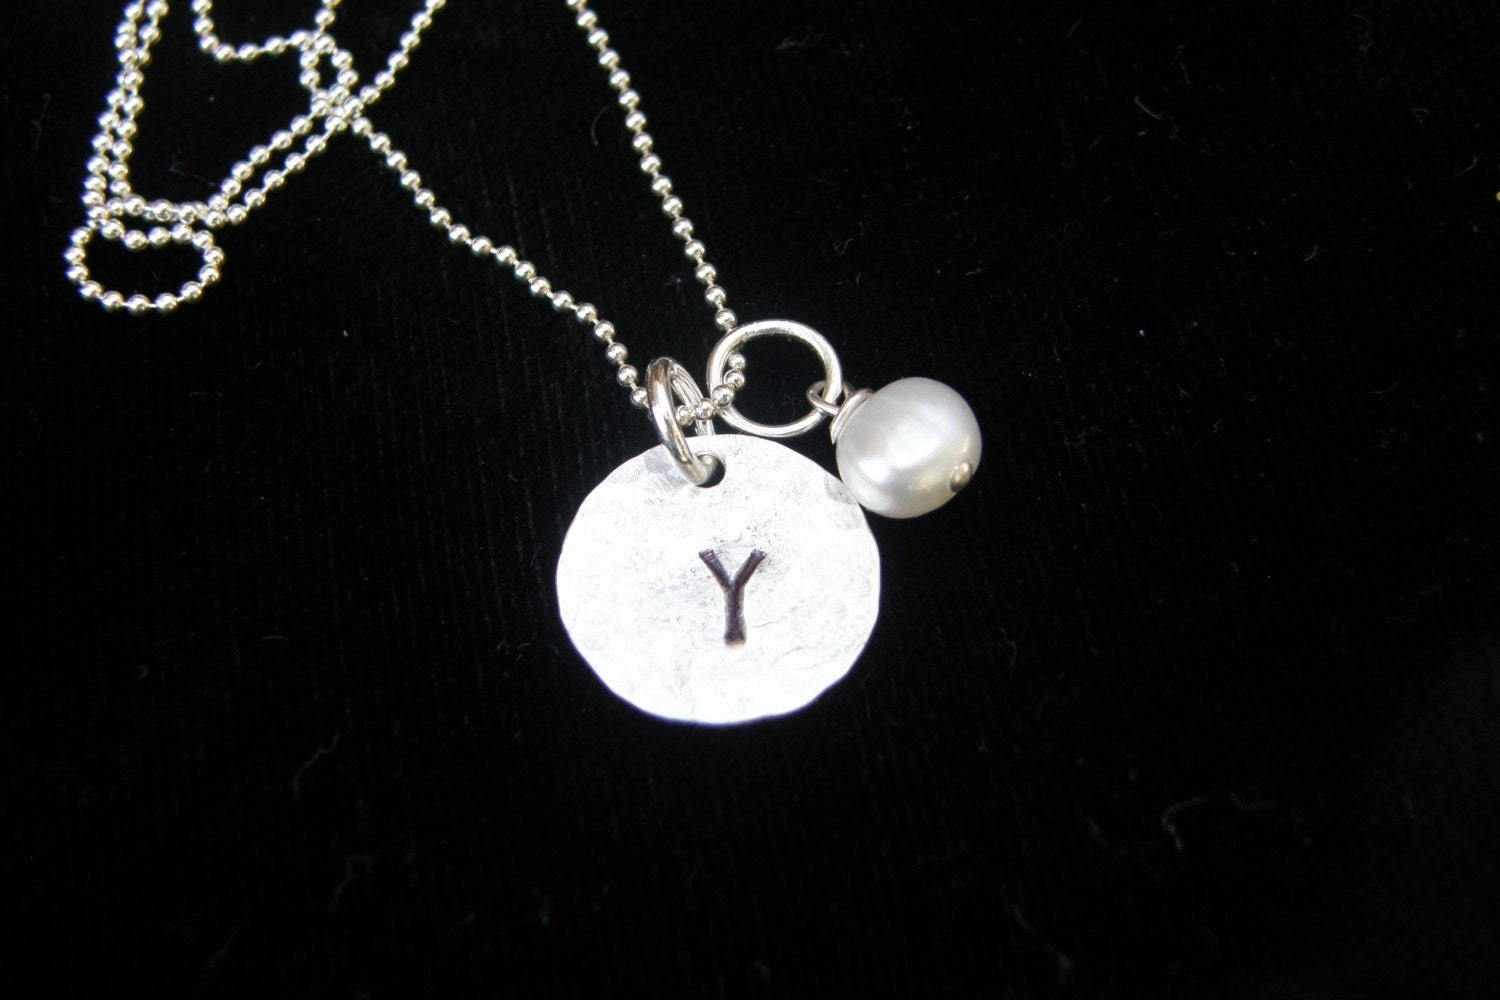 Your Initial On A Sterling Silvel Disc With A Pearl